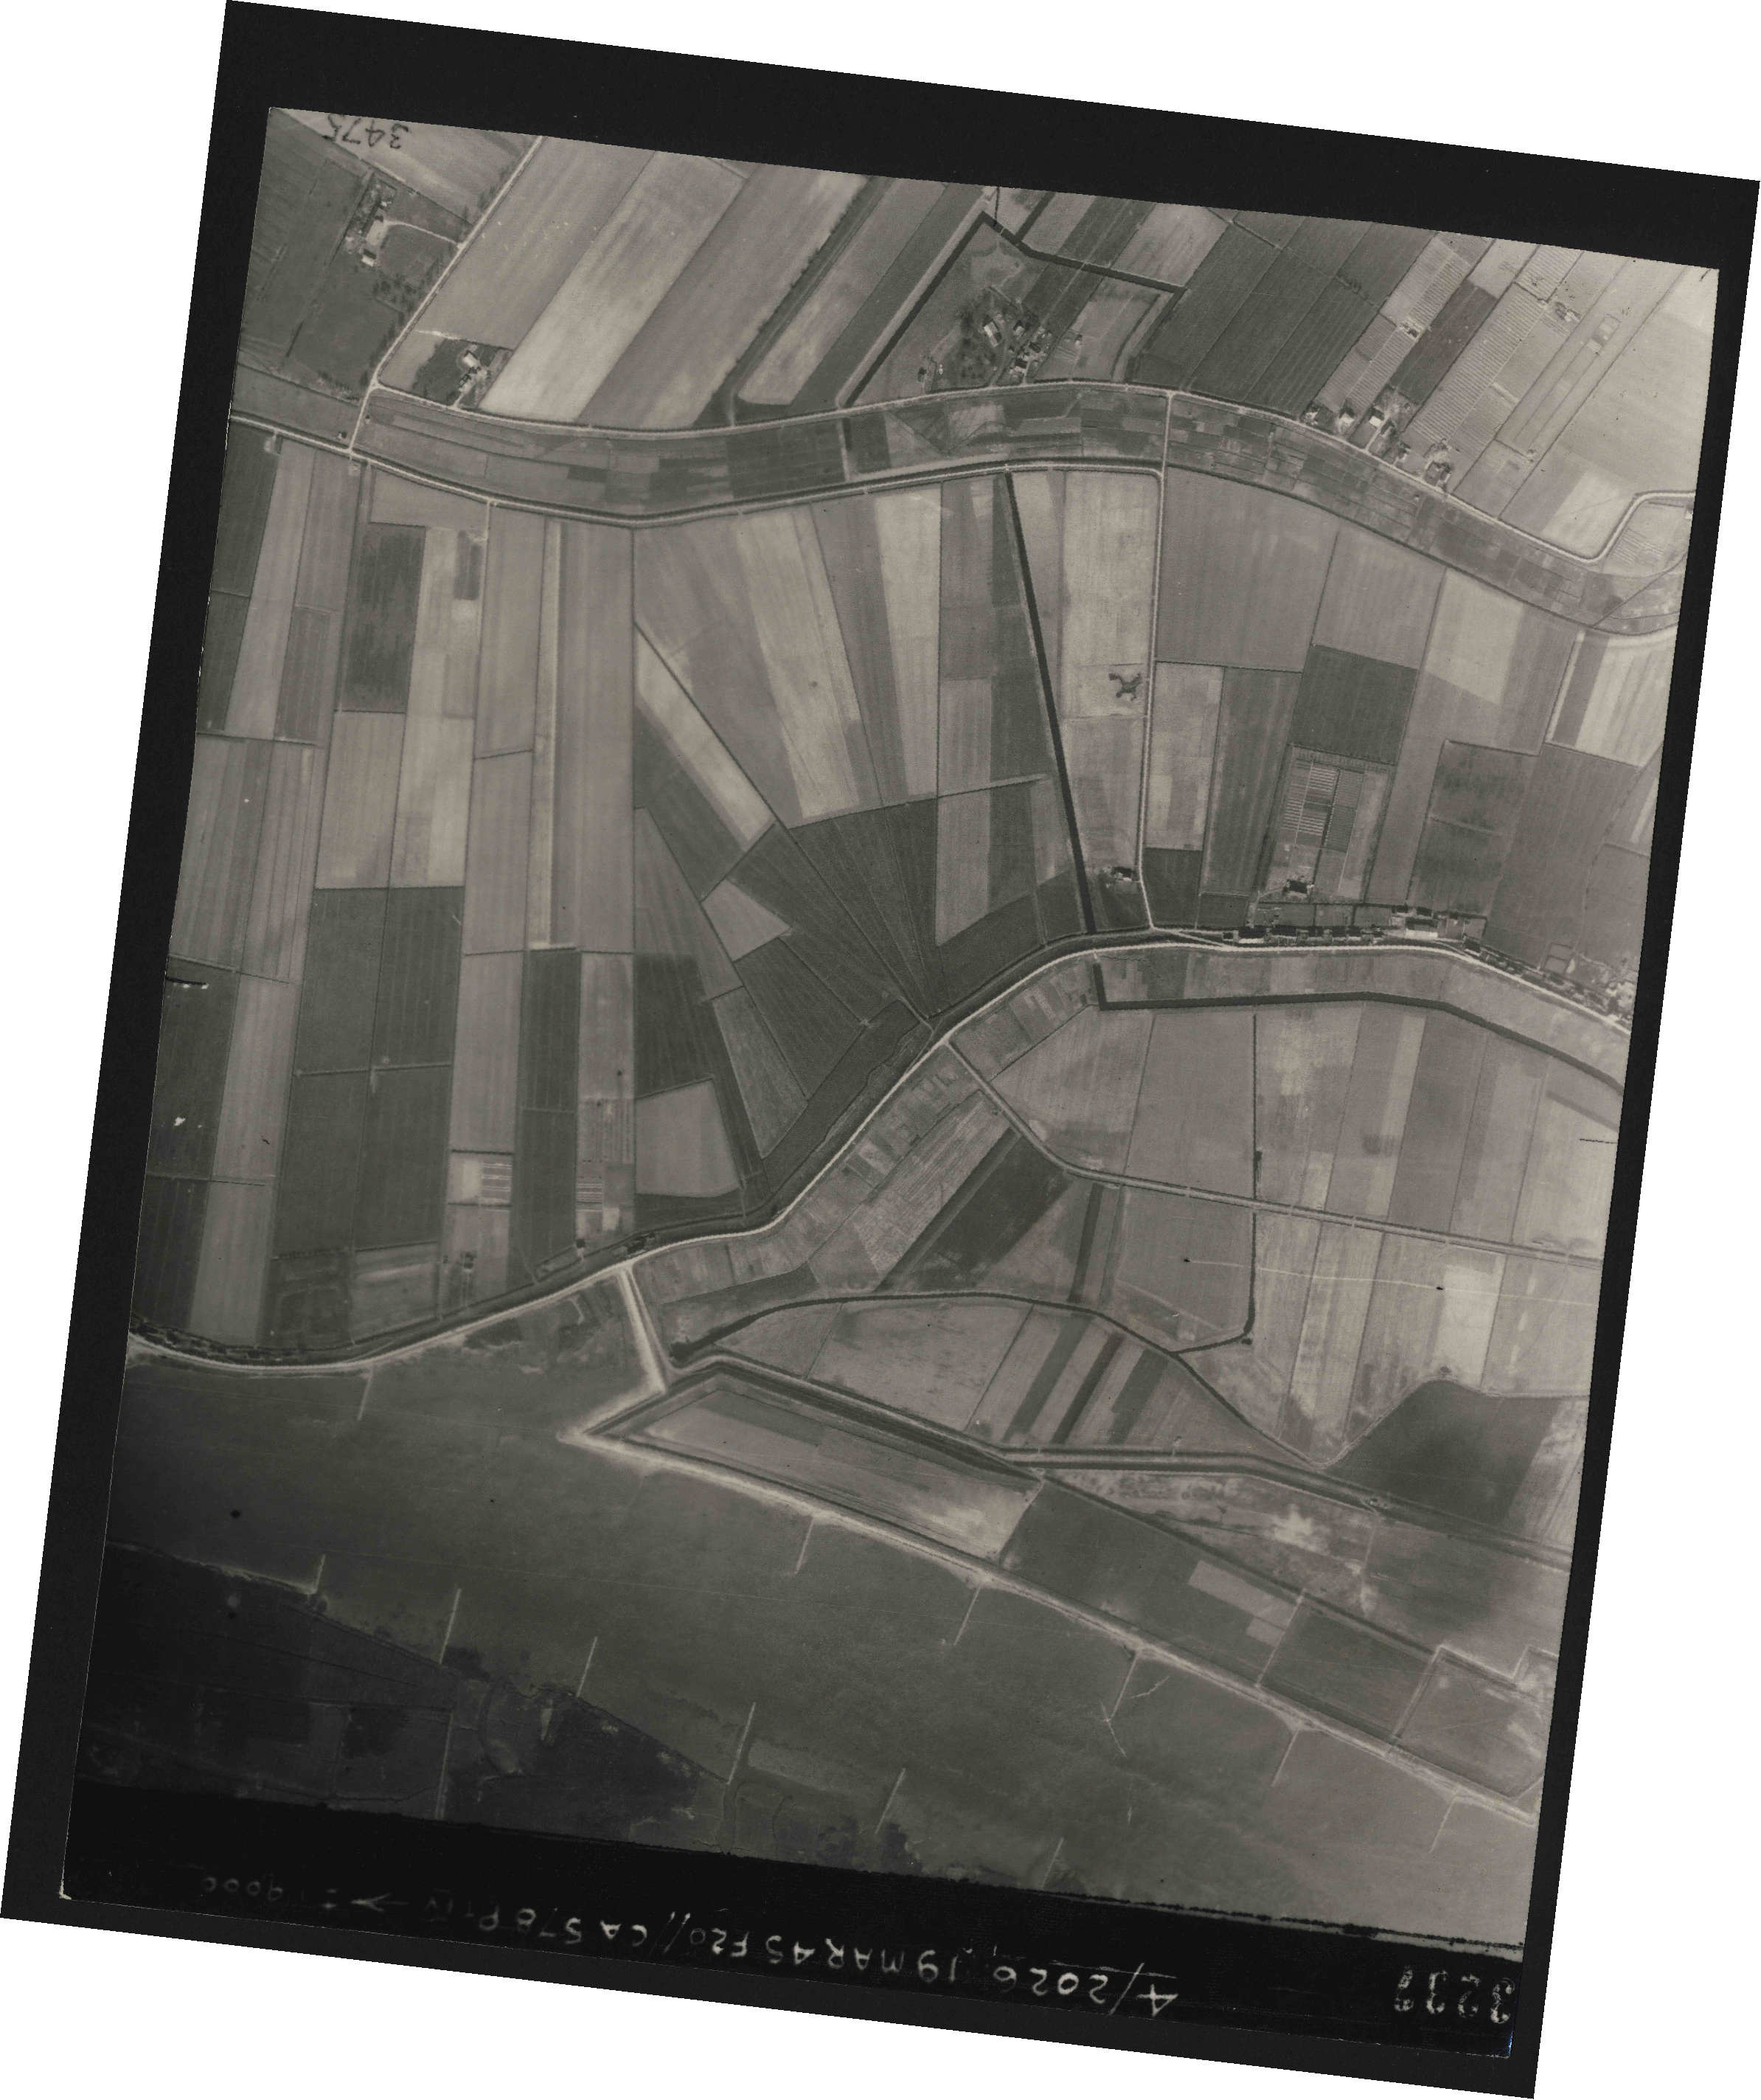 Collection RAF aerial photos 1940-1945 - flight 012, run 08, photo 3237